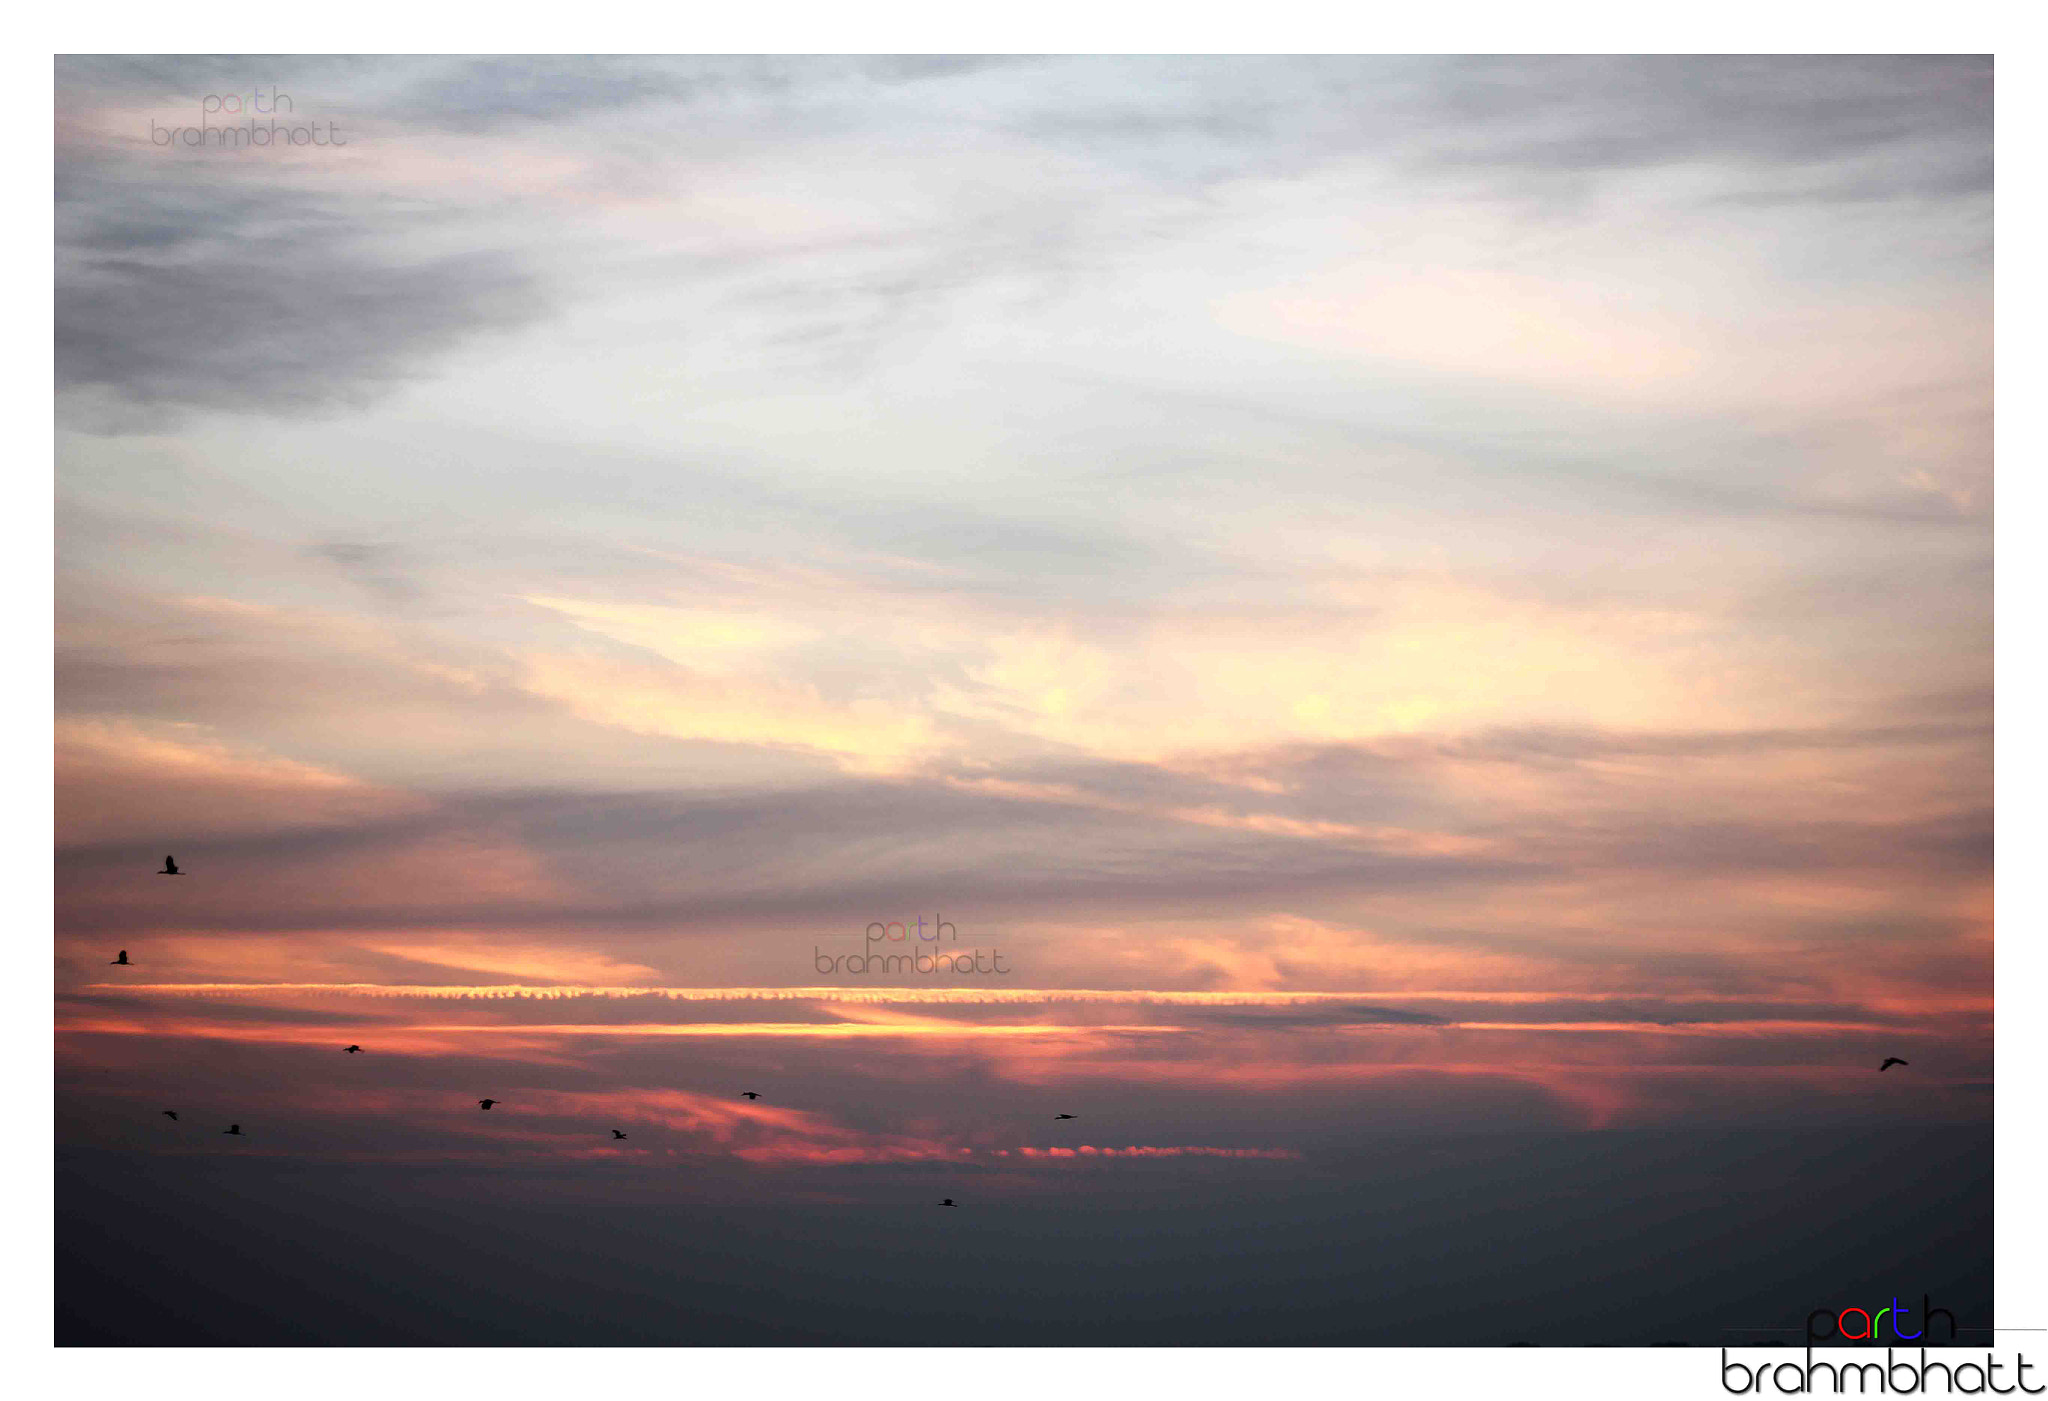 Photograph at the horizon by Paarth Brahmbhatt on 500px